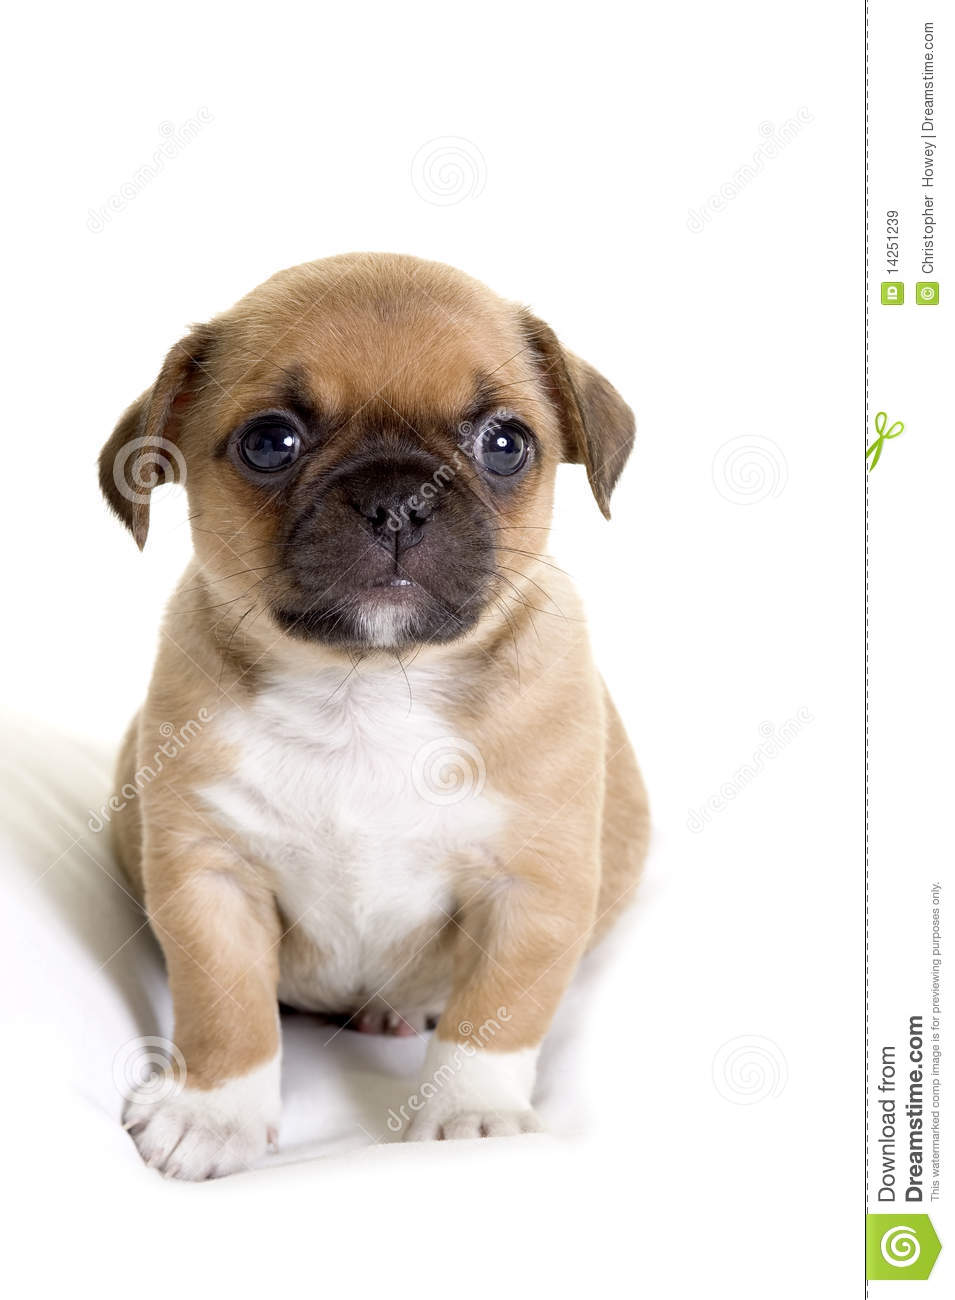 chiuaua pug puppies pug chihuahua puppy stock image image of puppy chihuahua 854